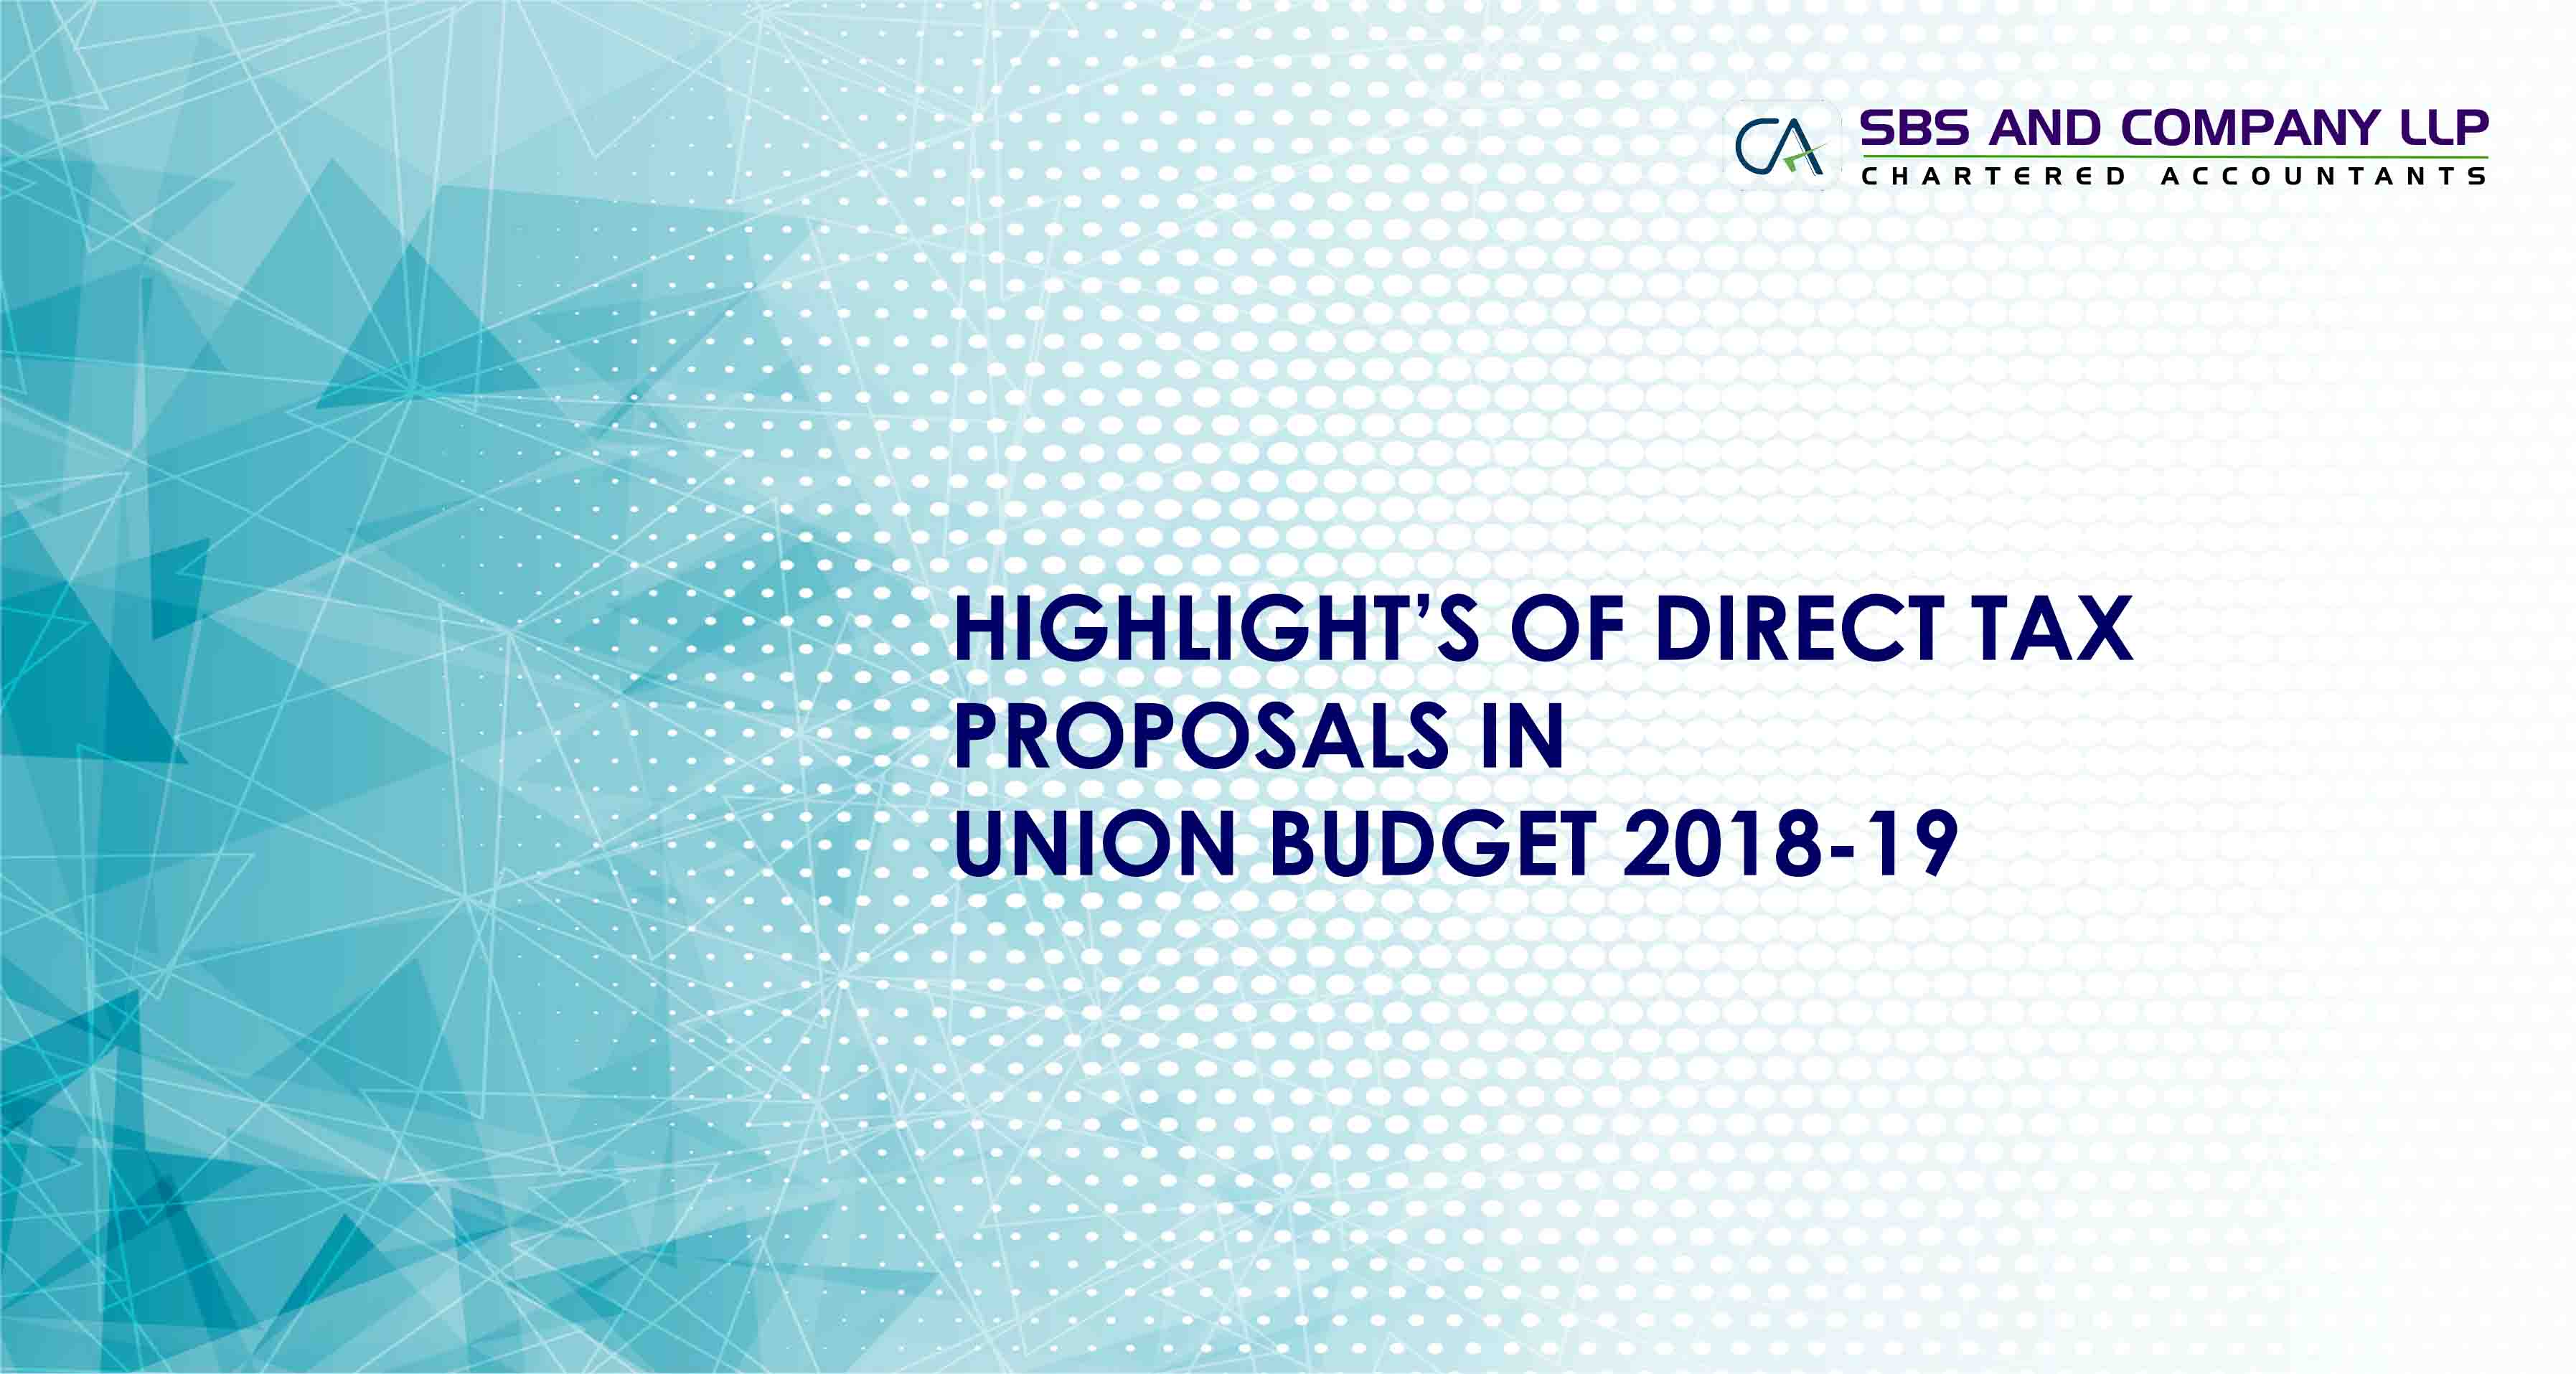 HIGHLIGHT'S OF DIRECT TAX PROPOSALS UNION BUDGET 2018-19